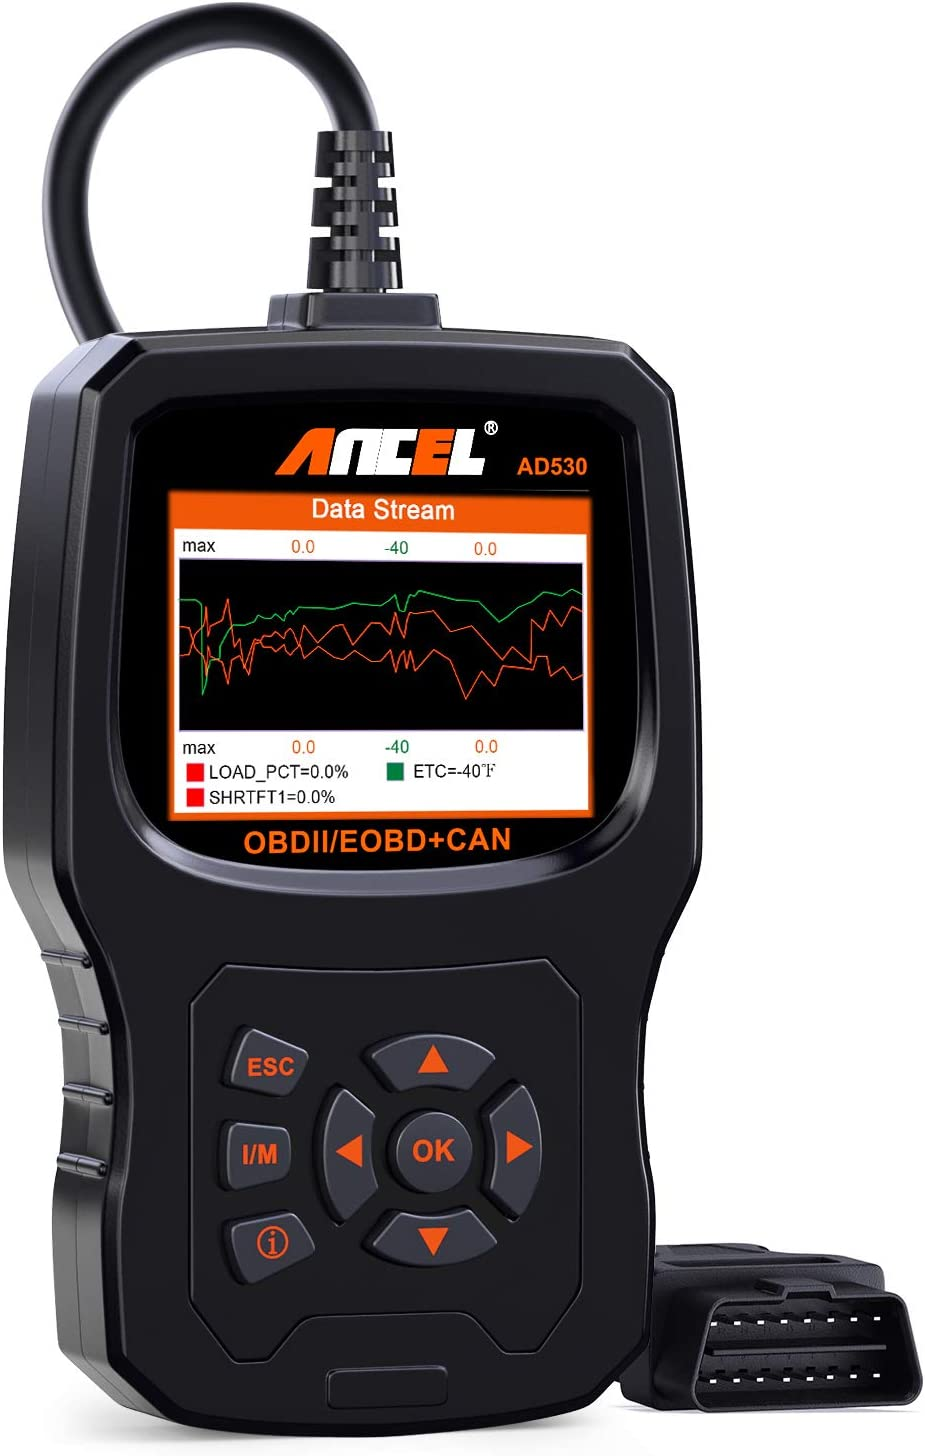 Vehicle Code Reader >> Ancel Ad530 Vehicle Obd2 Scanner Car Code Reader Diagnostic Scan Tool With Enhanced Code Definition And Upgraded Graphing Battery Status